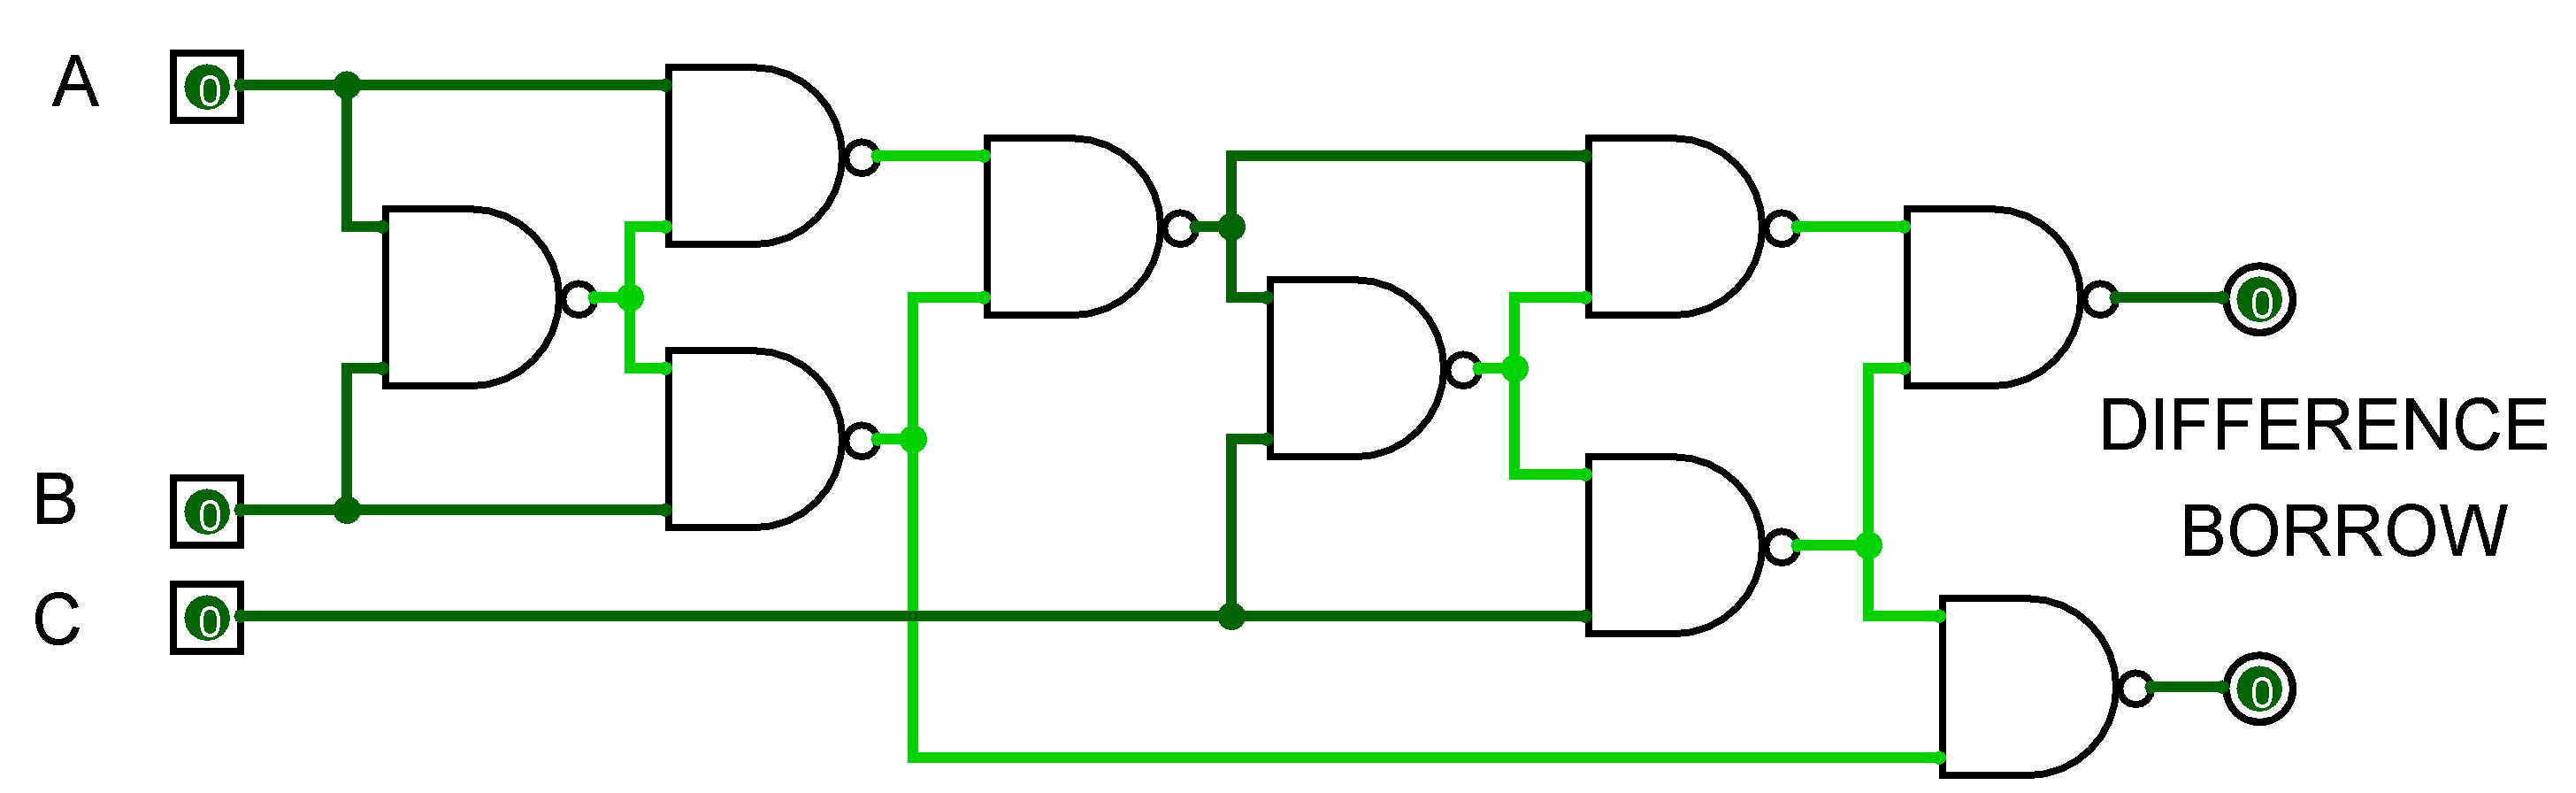 Circuit Diagram For Nand Gate | Logic Diagram Using Nand Gates Only Wiring Diagram